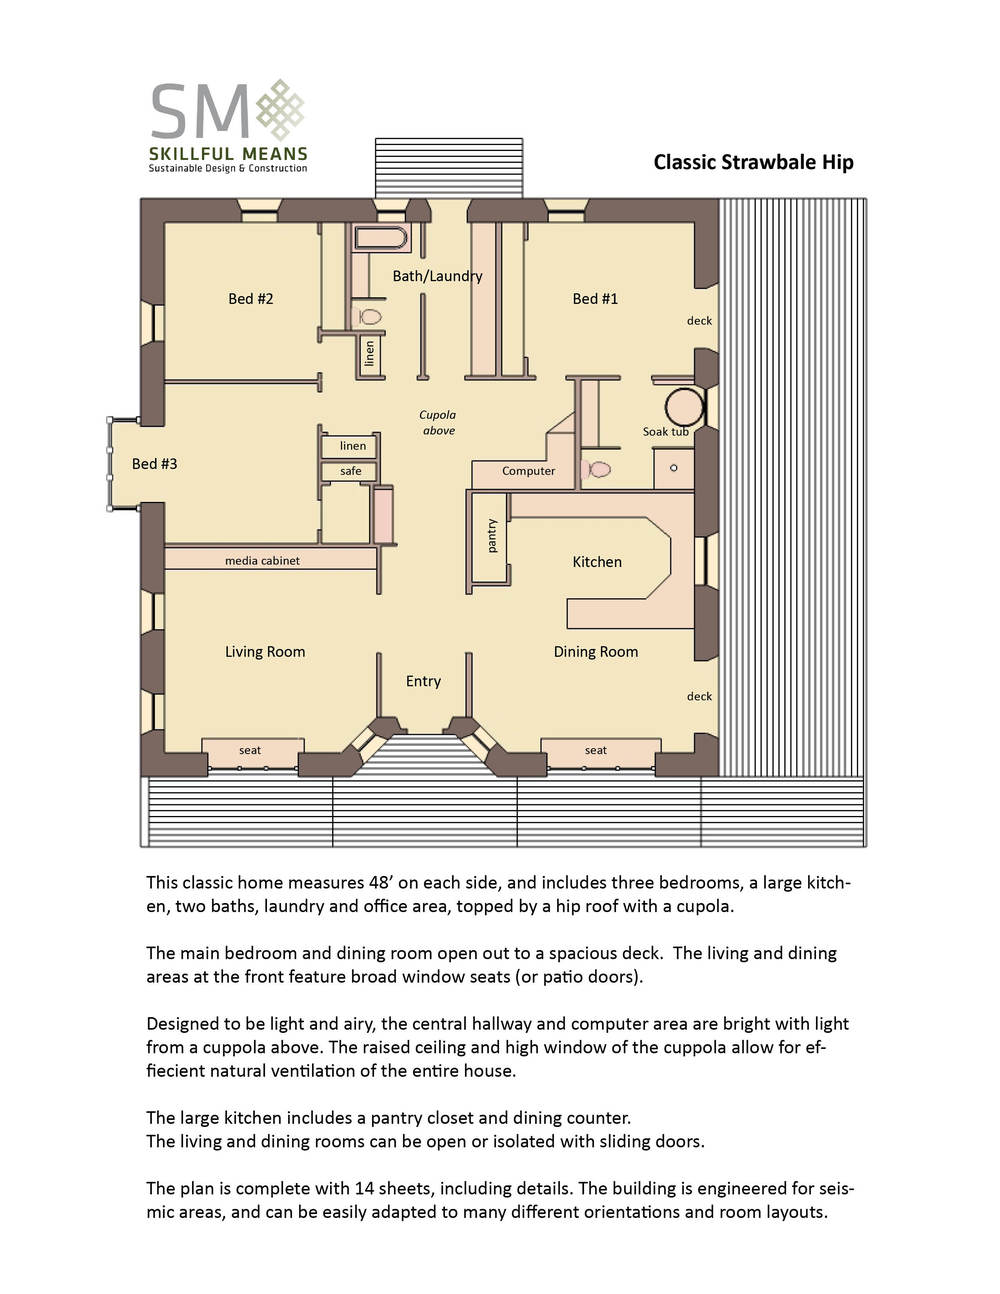 Classic square House Plan   Skillful Means design   buildhouse plans classic strawbale hip